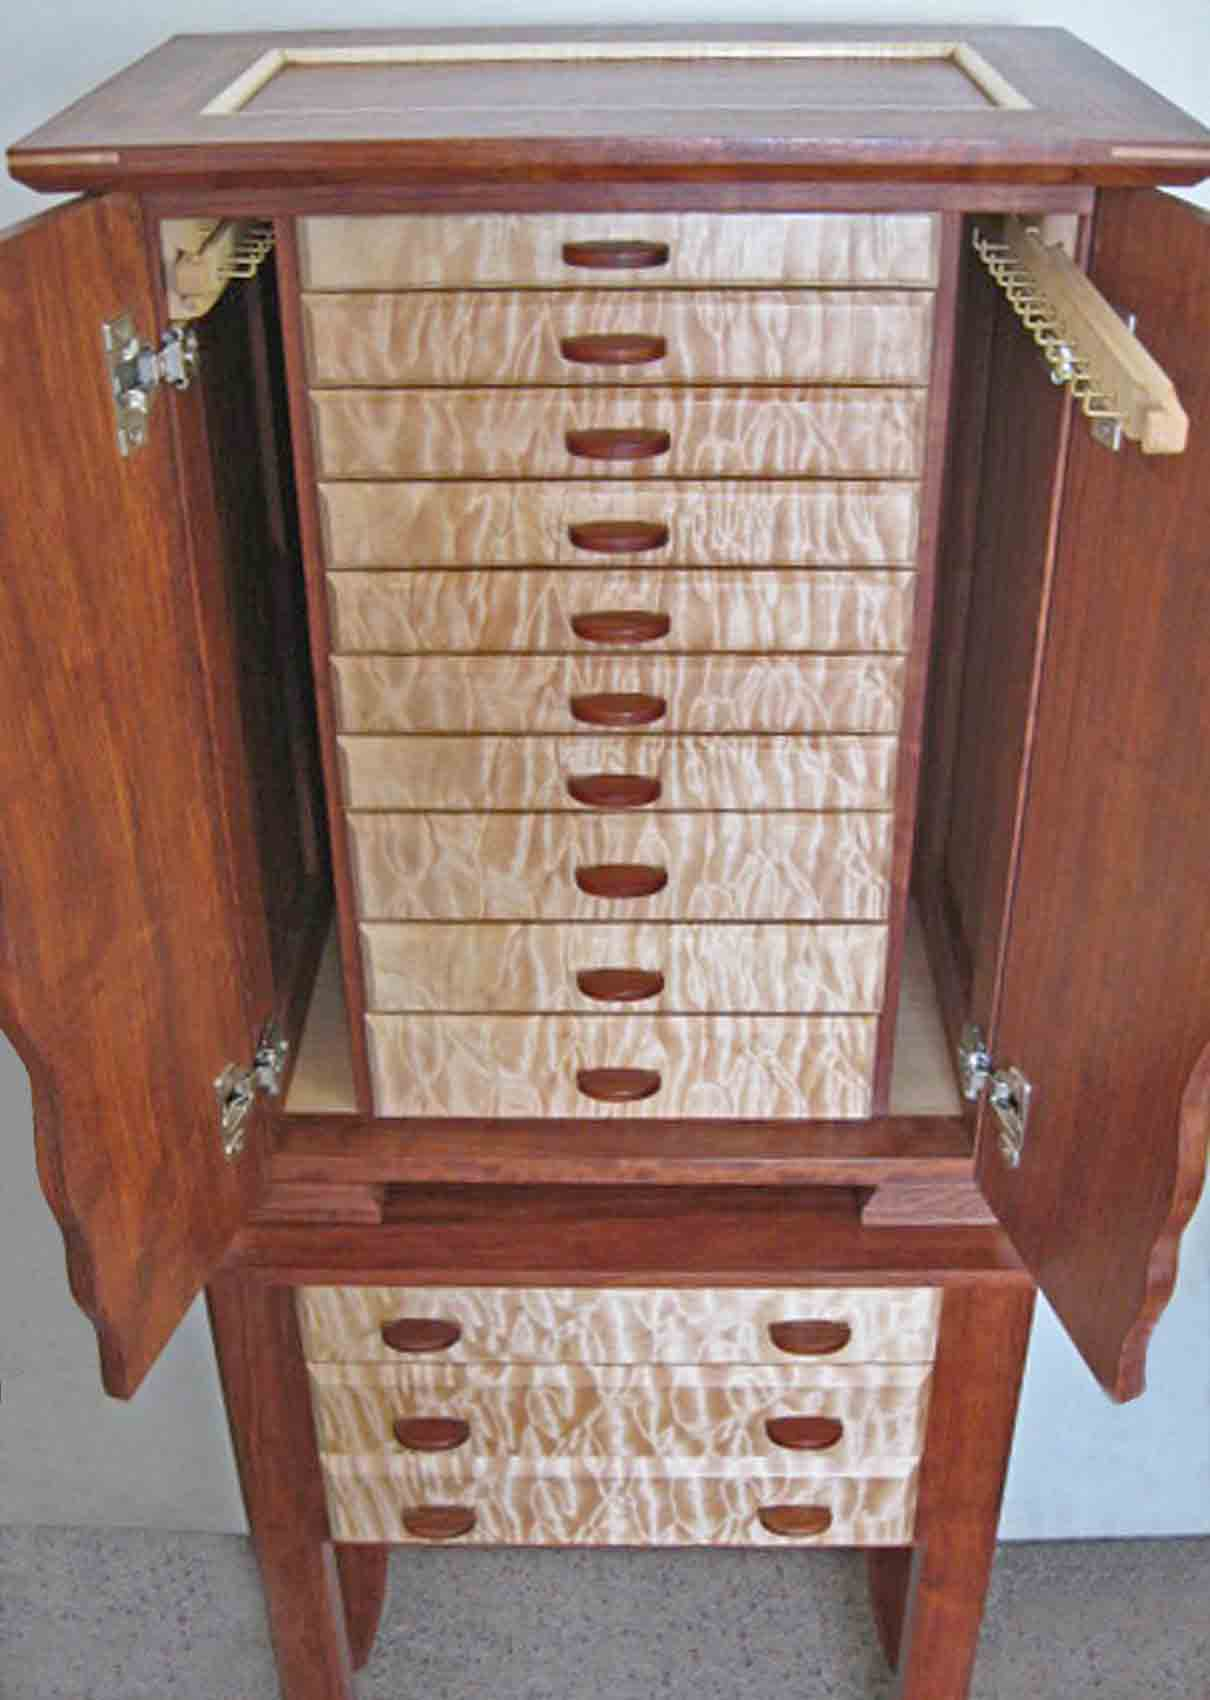 Standing Armoire Jewelry Box with drawers and doors open